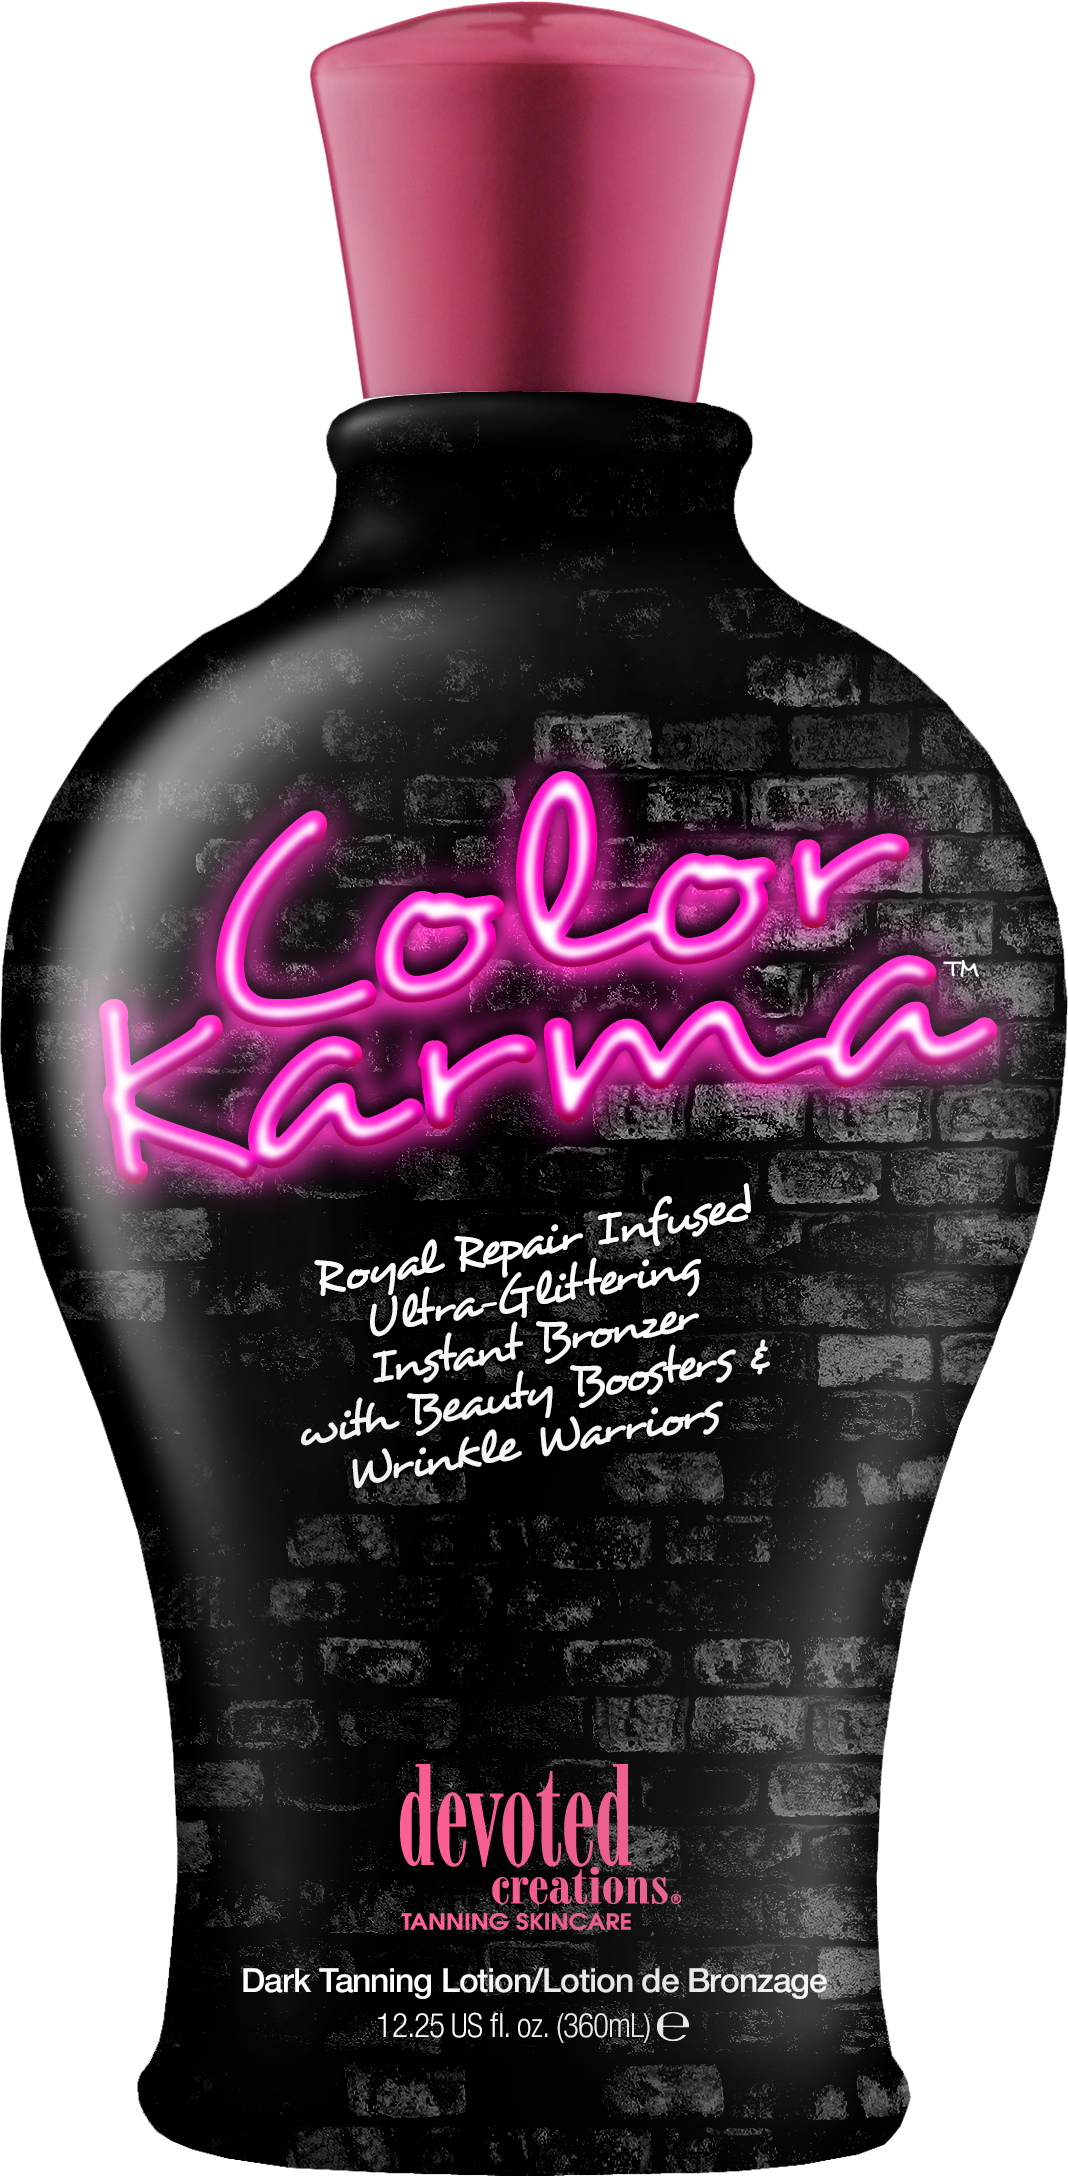 Color Karma Royal Repair Infused Ultra-Glittering Instant Bronzer